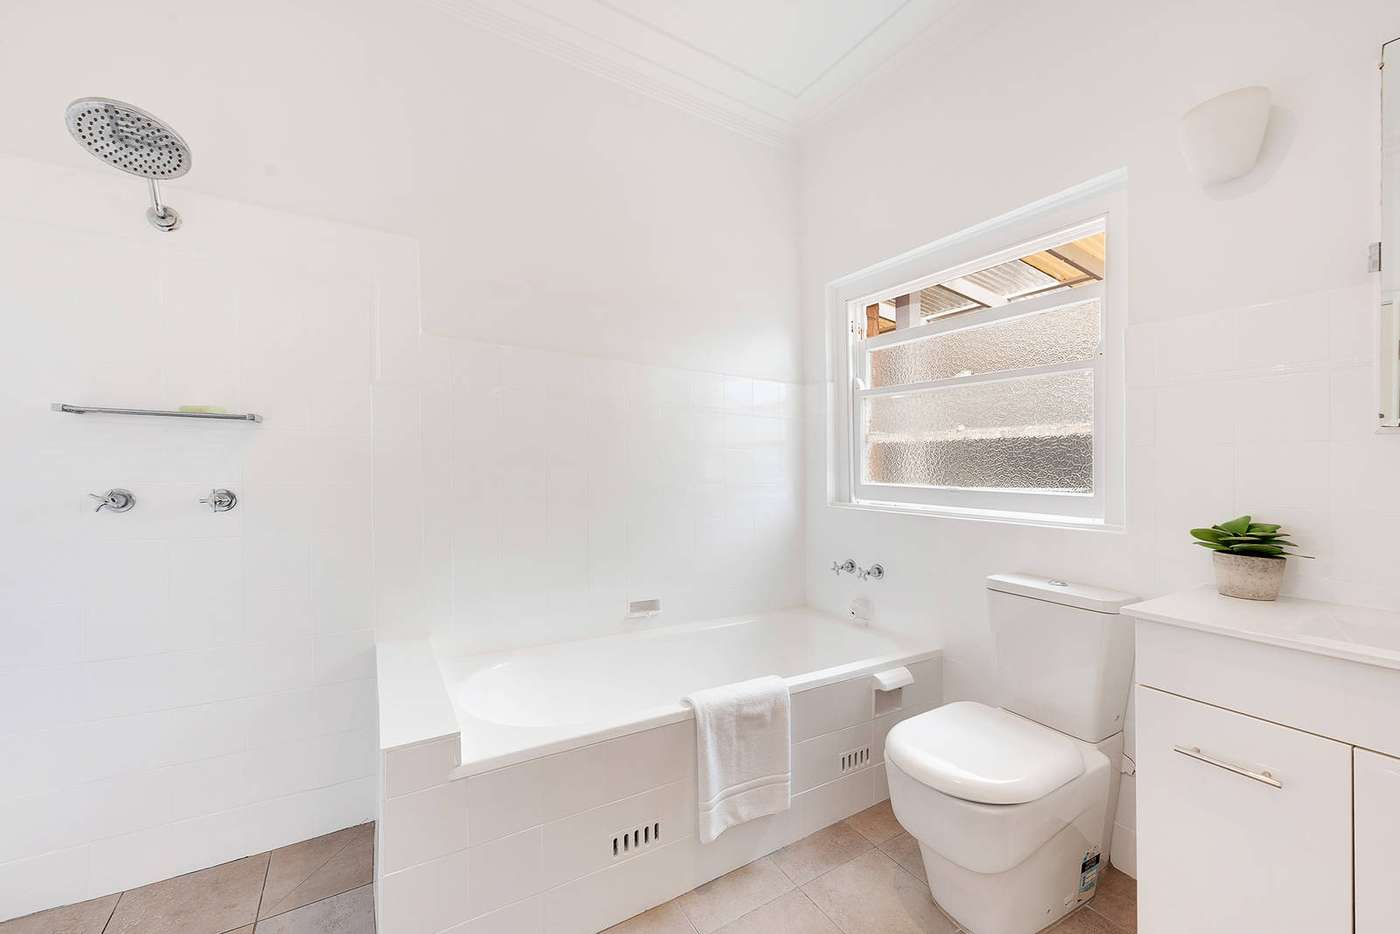 Seventh view of Homely house listing, 14 Charles Street, Castlecrag NSW 2068